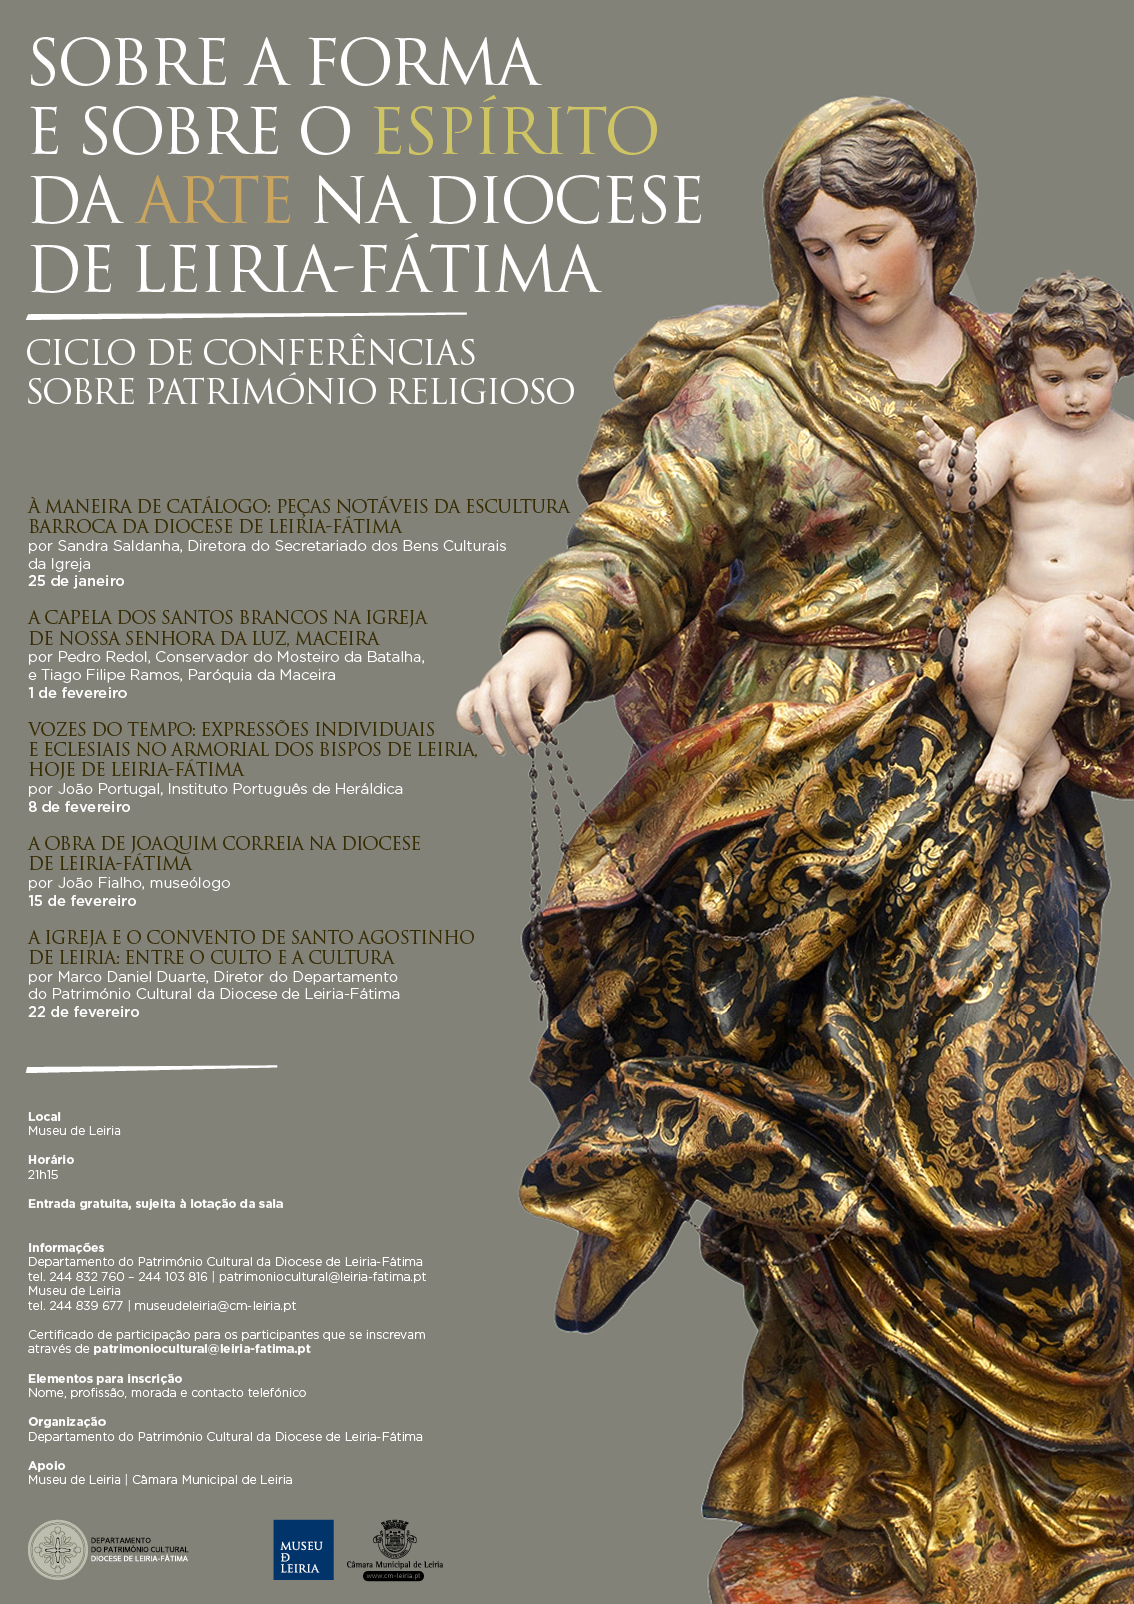 leiria-fatima conferencias17 cartaz